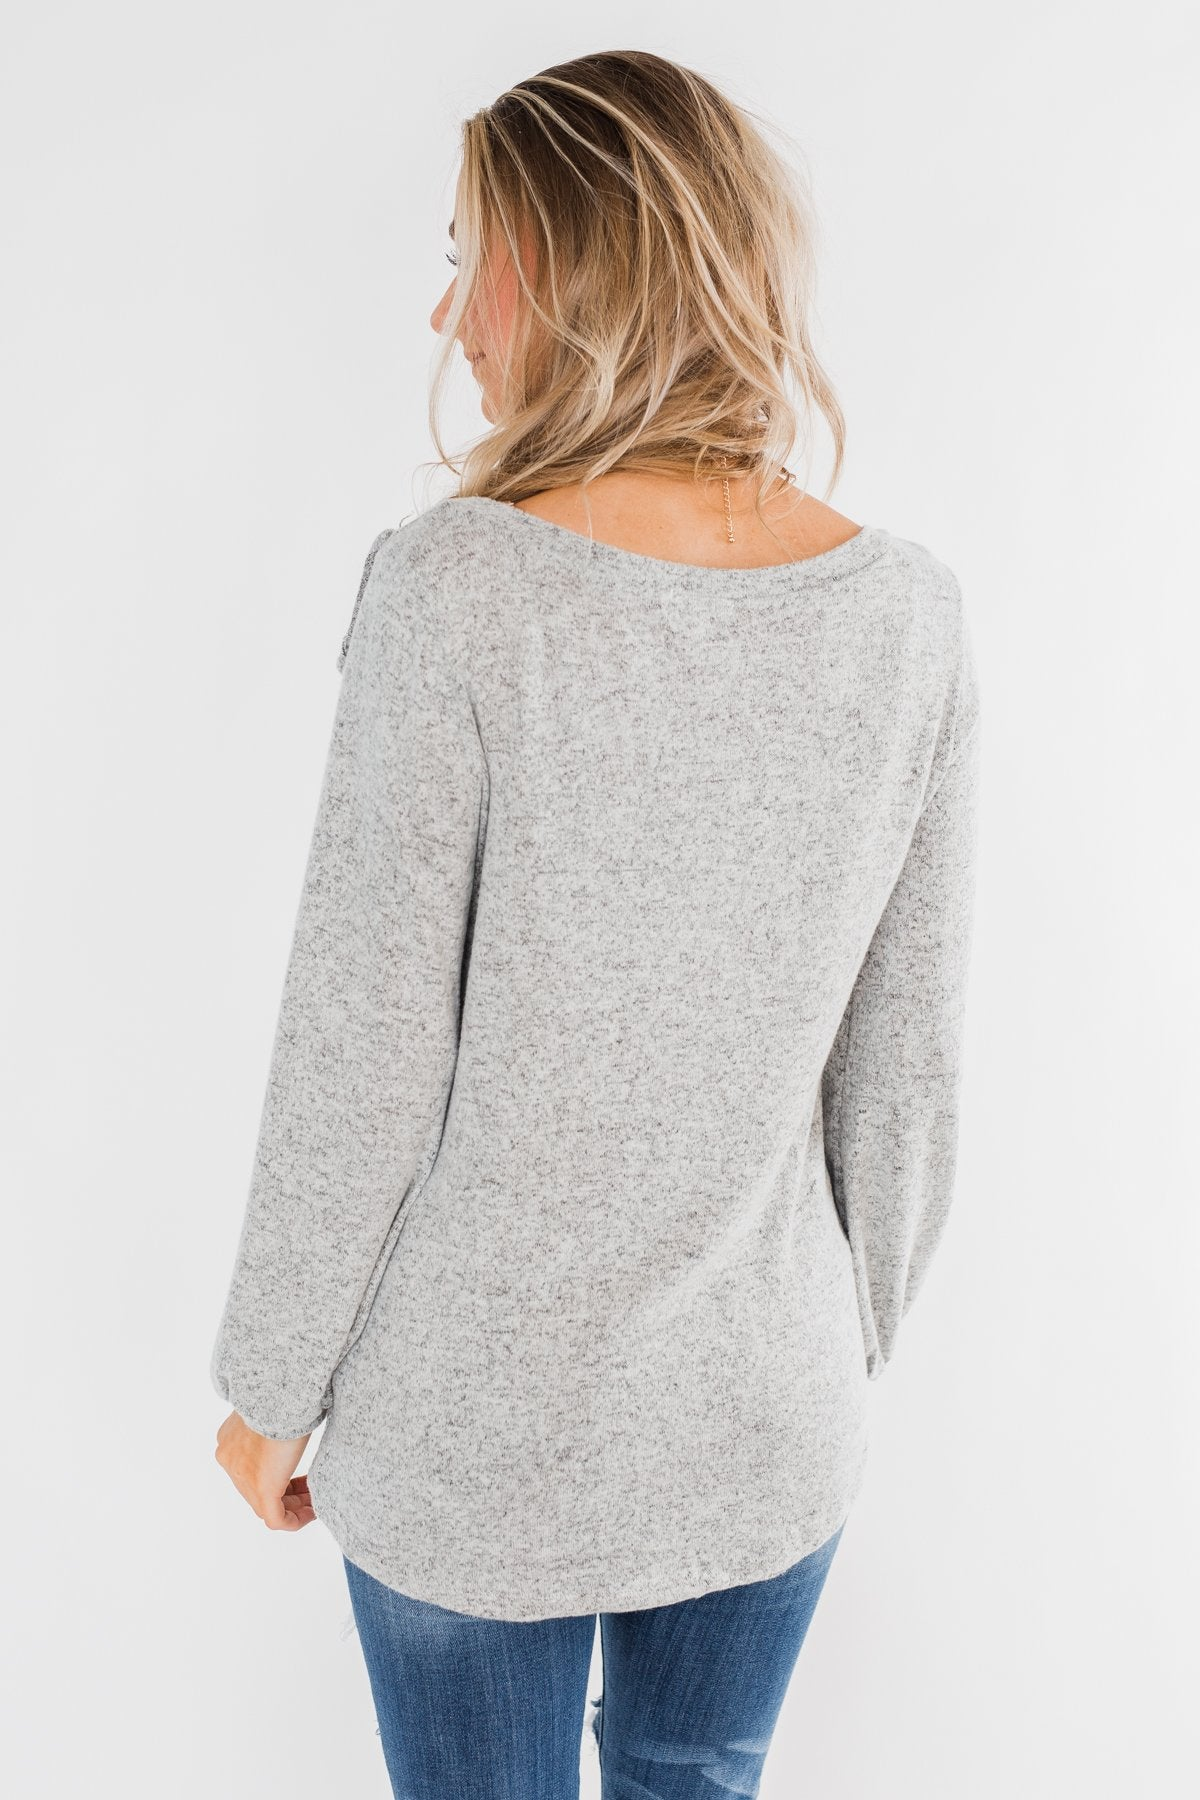 Feeling Brand New Ruffle Top- Heather Grey